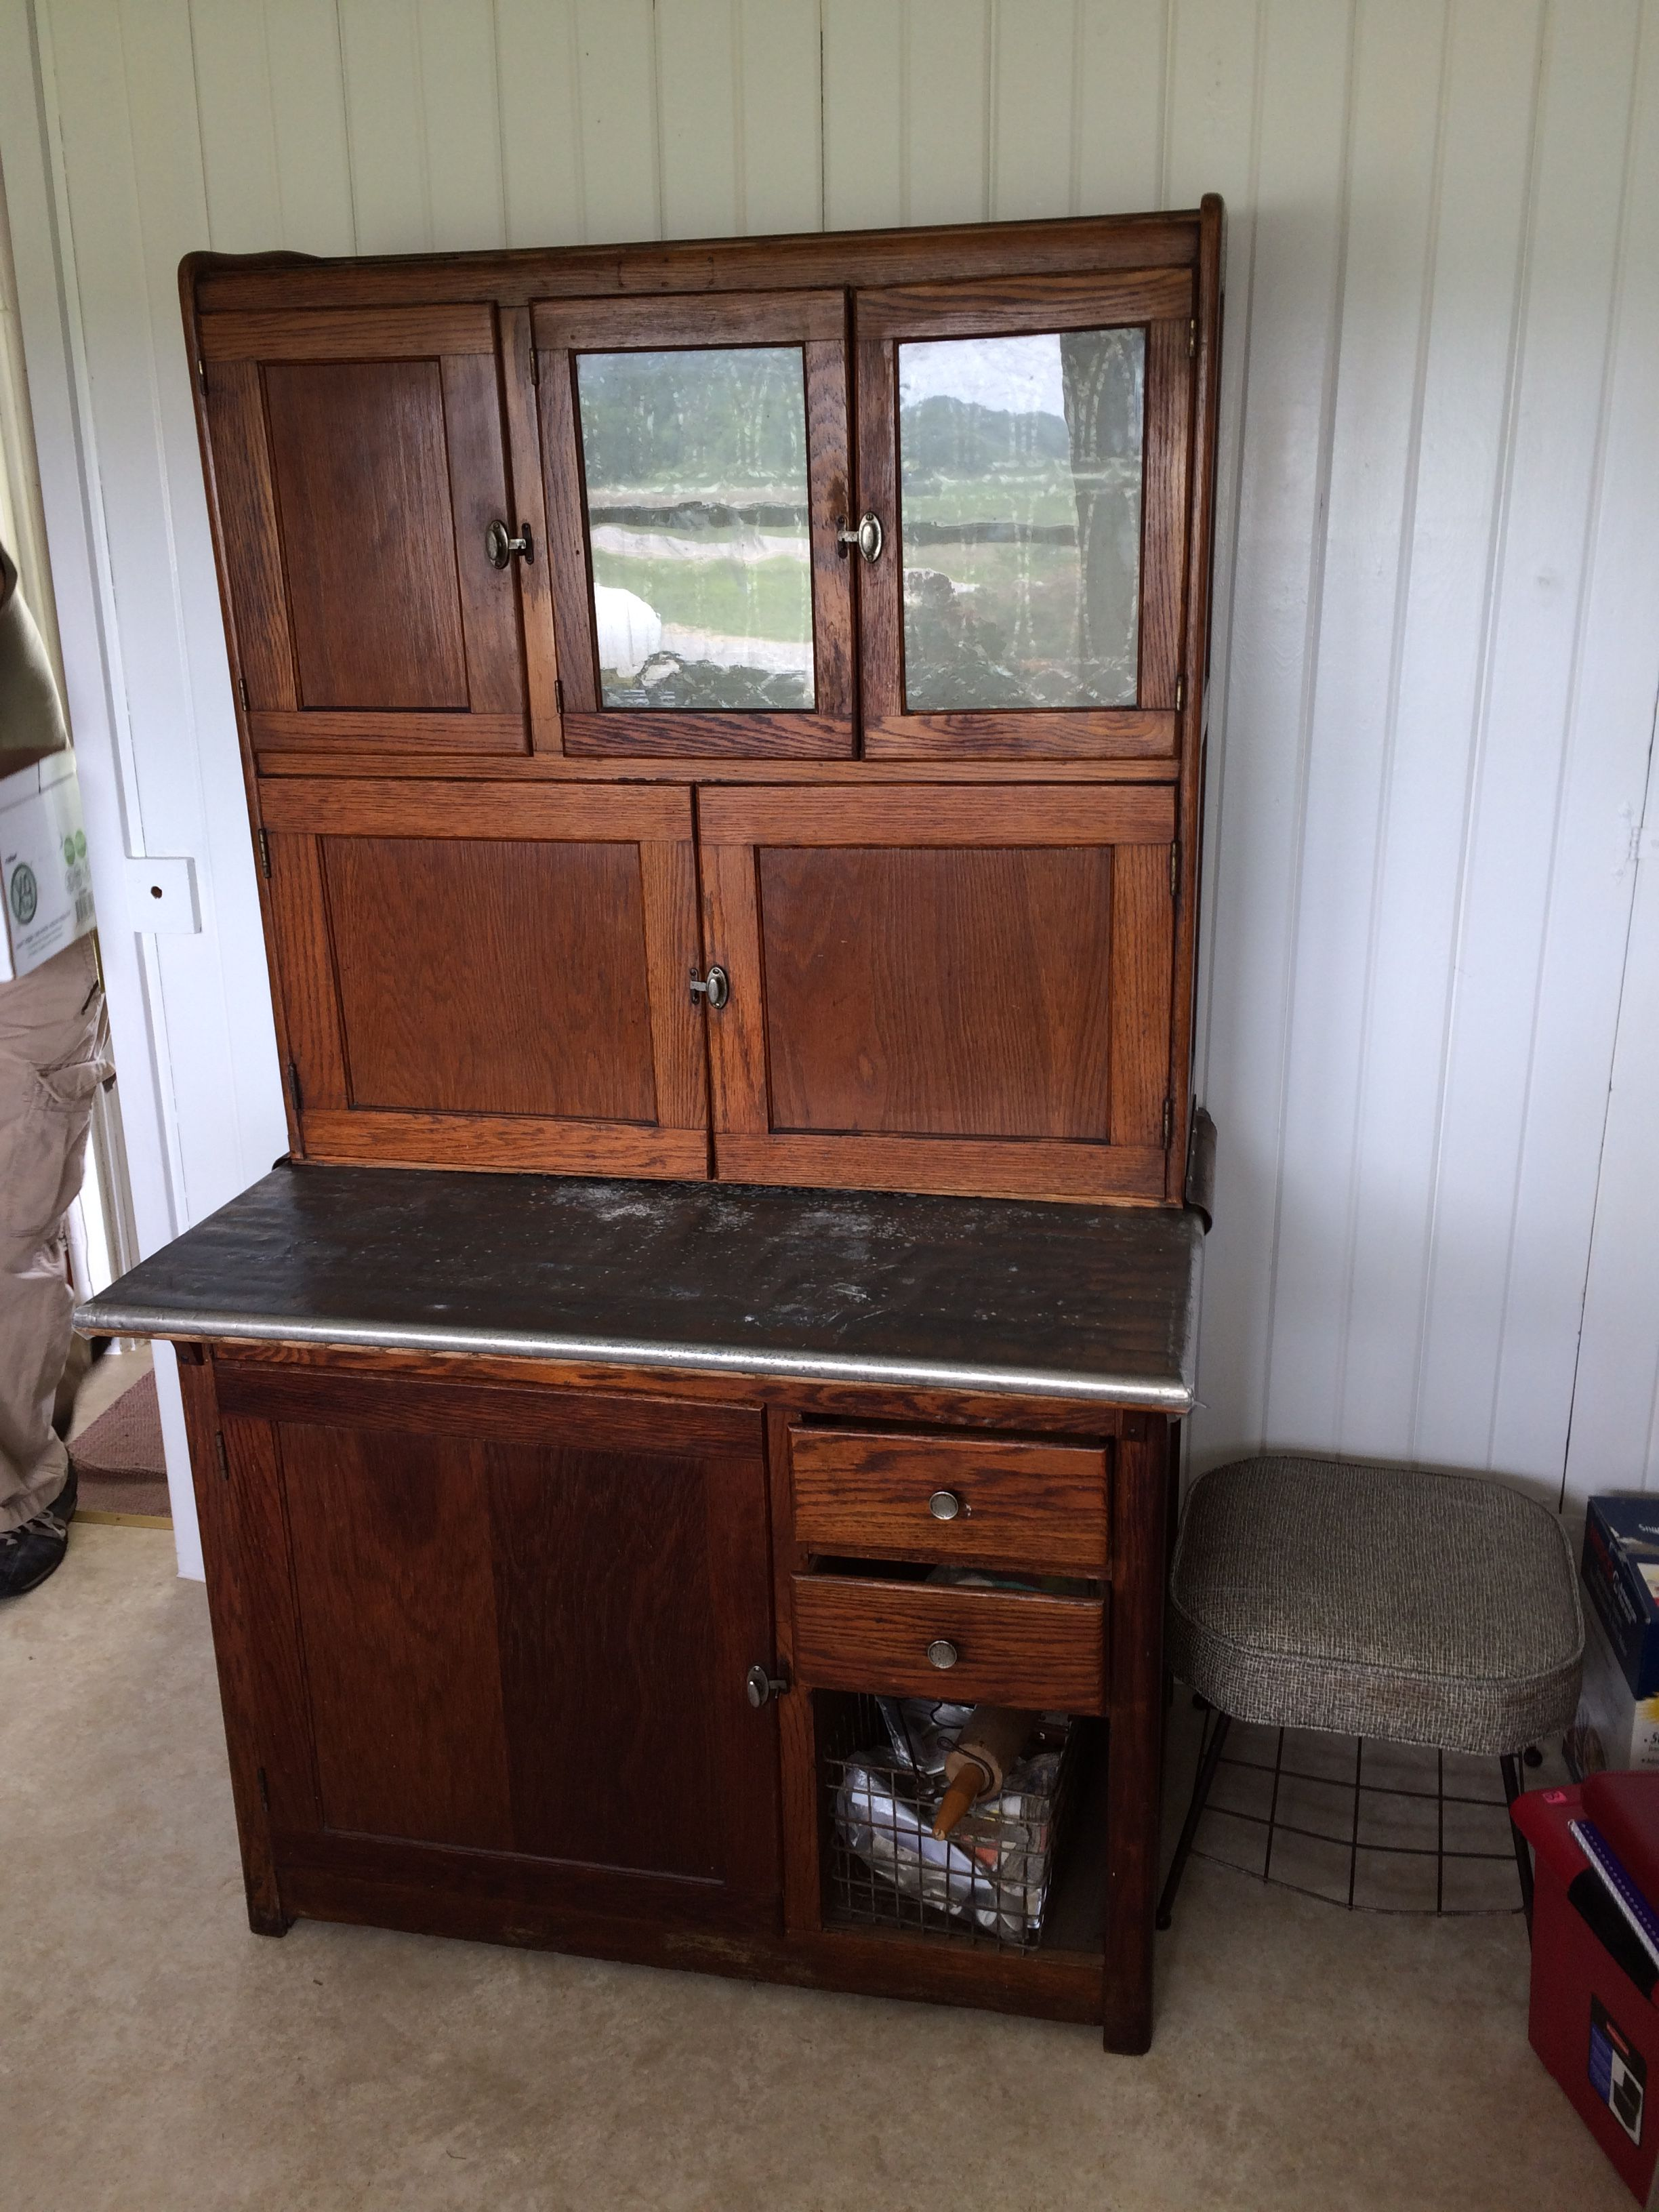 My 1910 Hoosier cupboard for sale on in my shop and on